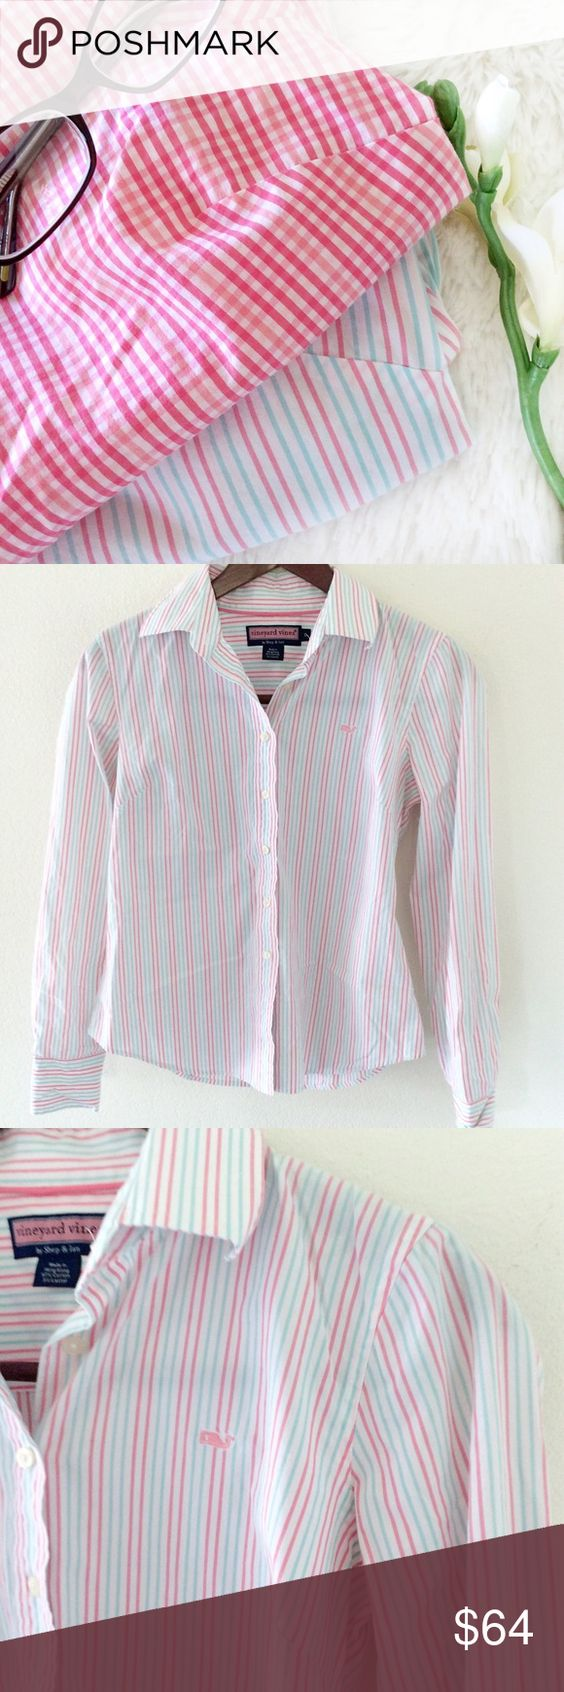 NWOT🔸Vineyard Vines Button Down •Vineyard Vines •NWOT •In cover photo it's the bottom shirt(you can see colors better in cover photo) Size: small  •Please see all pics, read description, and ask questions before purchasing   •No Trades• •15% off 2+ Bundle• Vineyard Vines Tops Button Down Shirts